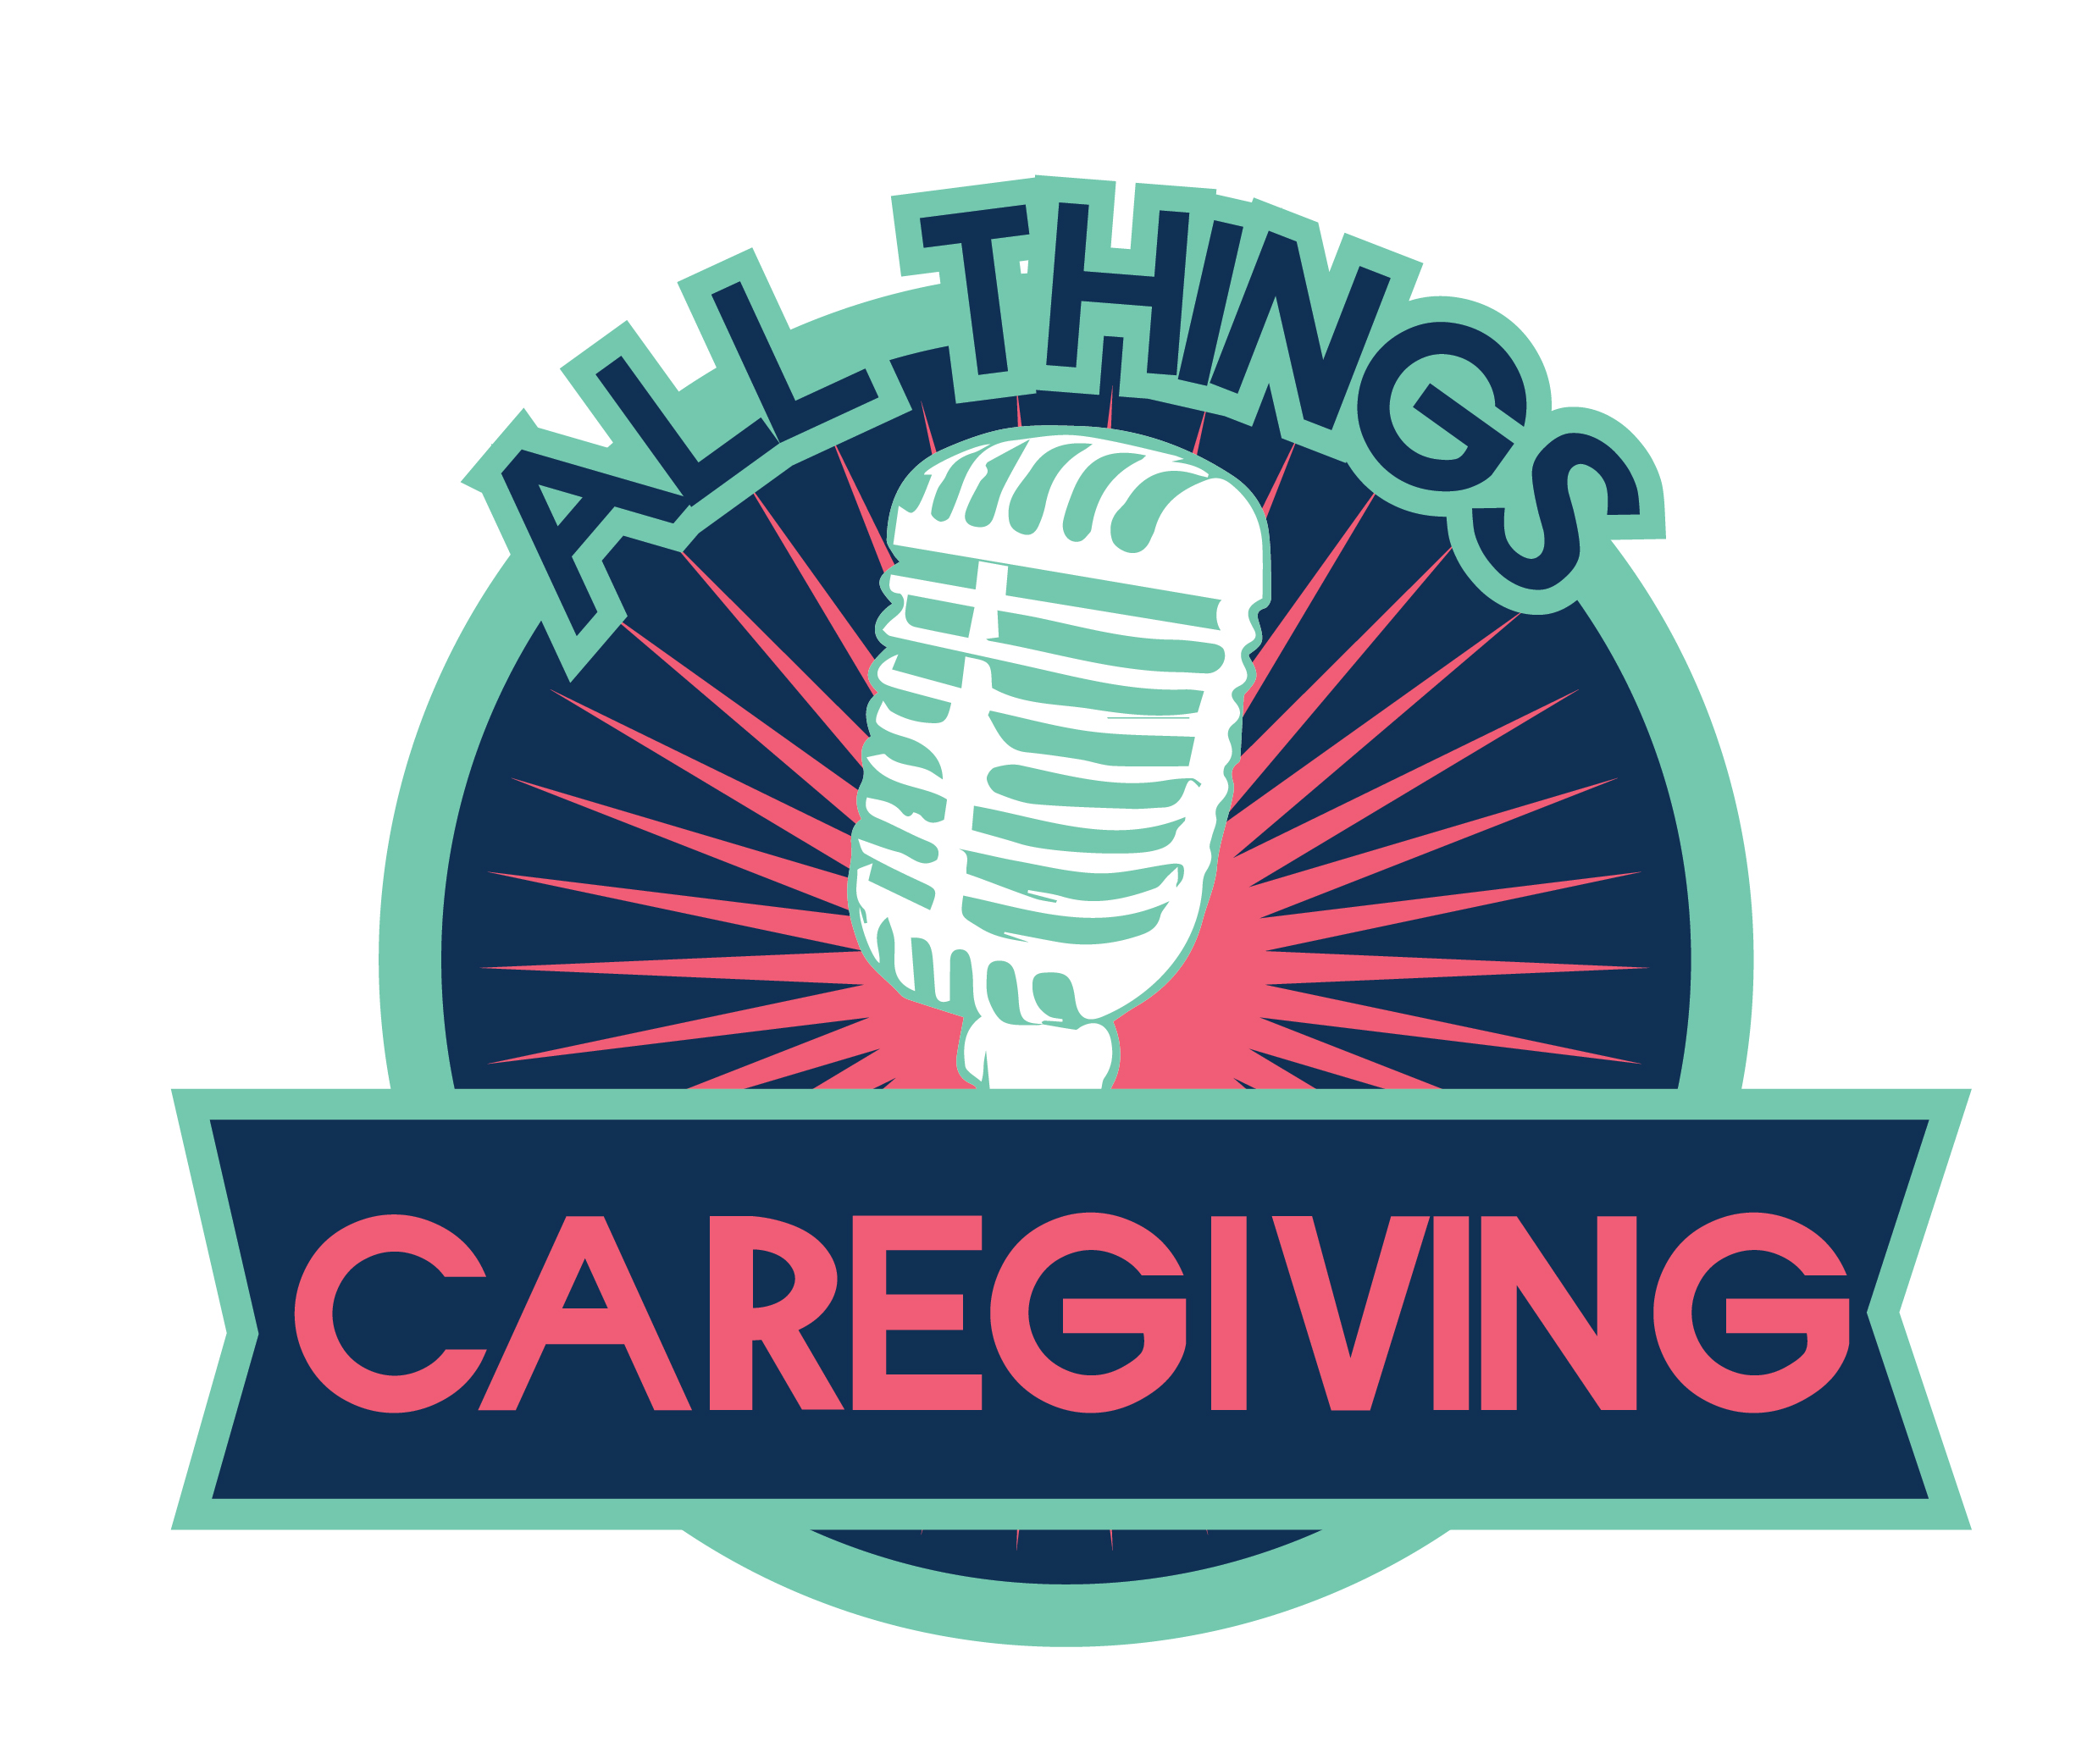 All Things Caregiving Youtube talk show